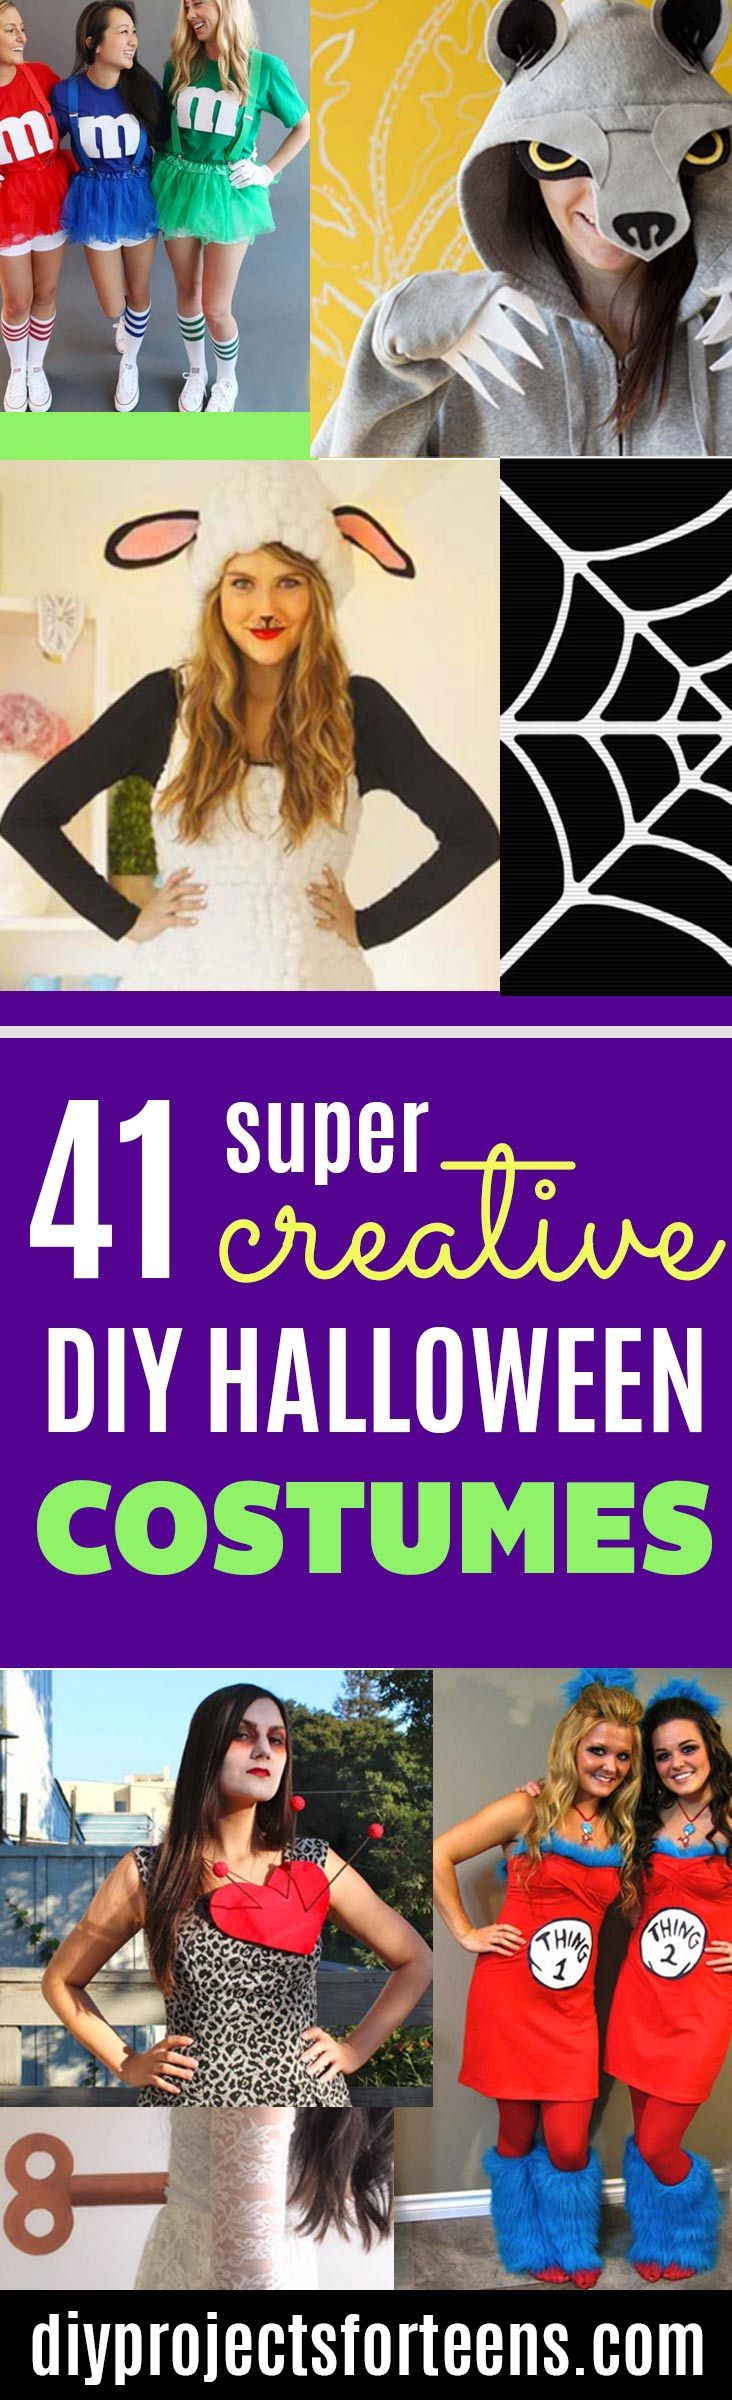 41 best diy halloween costumes images on pinterest carnivals 41 super creative diy halloween costumes for teens solutioingenieria Image collections